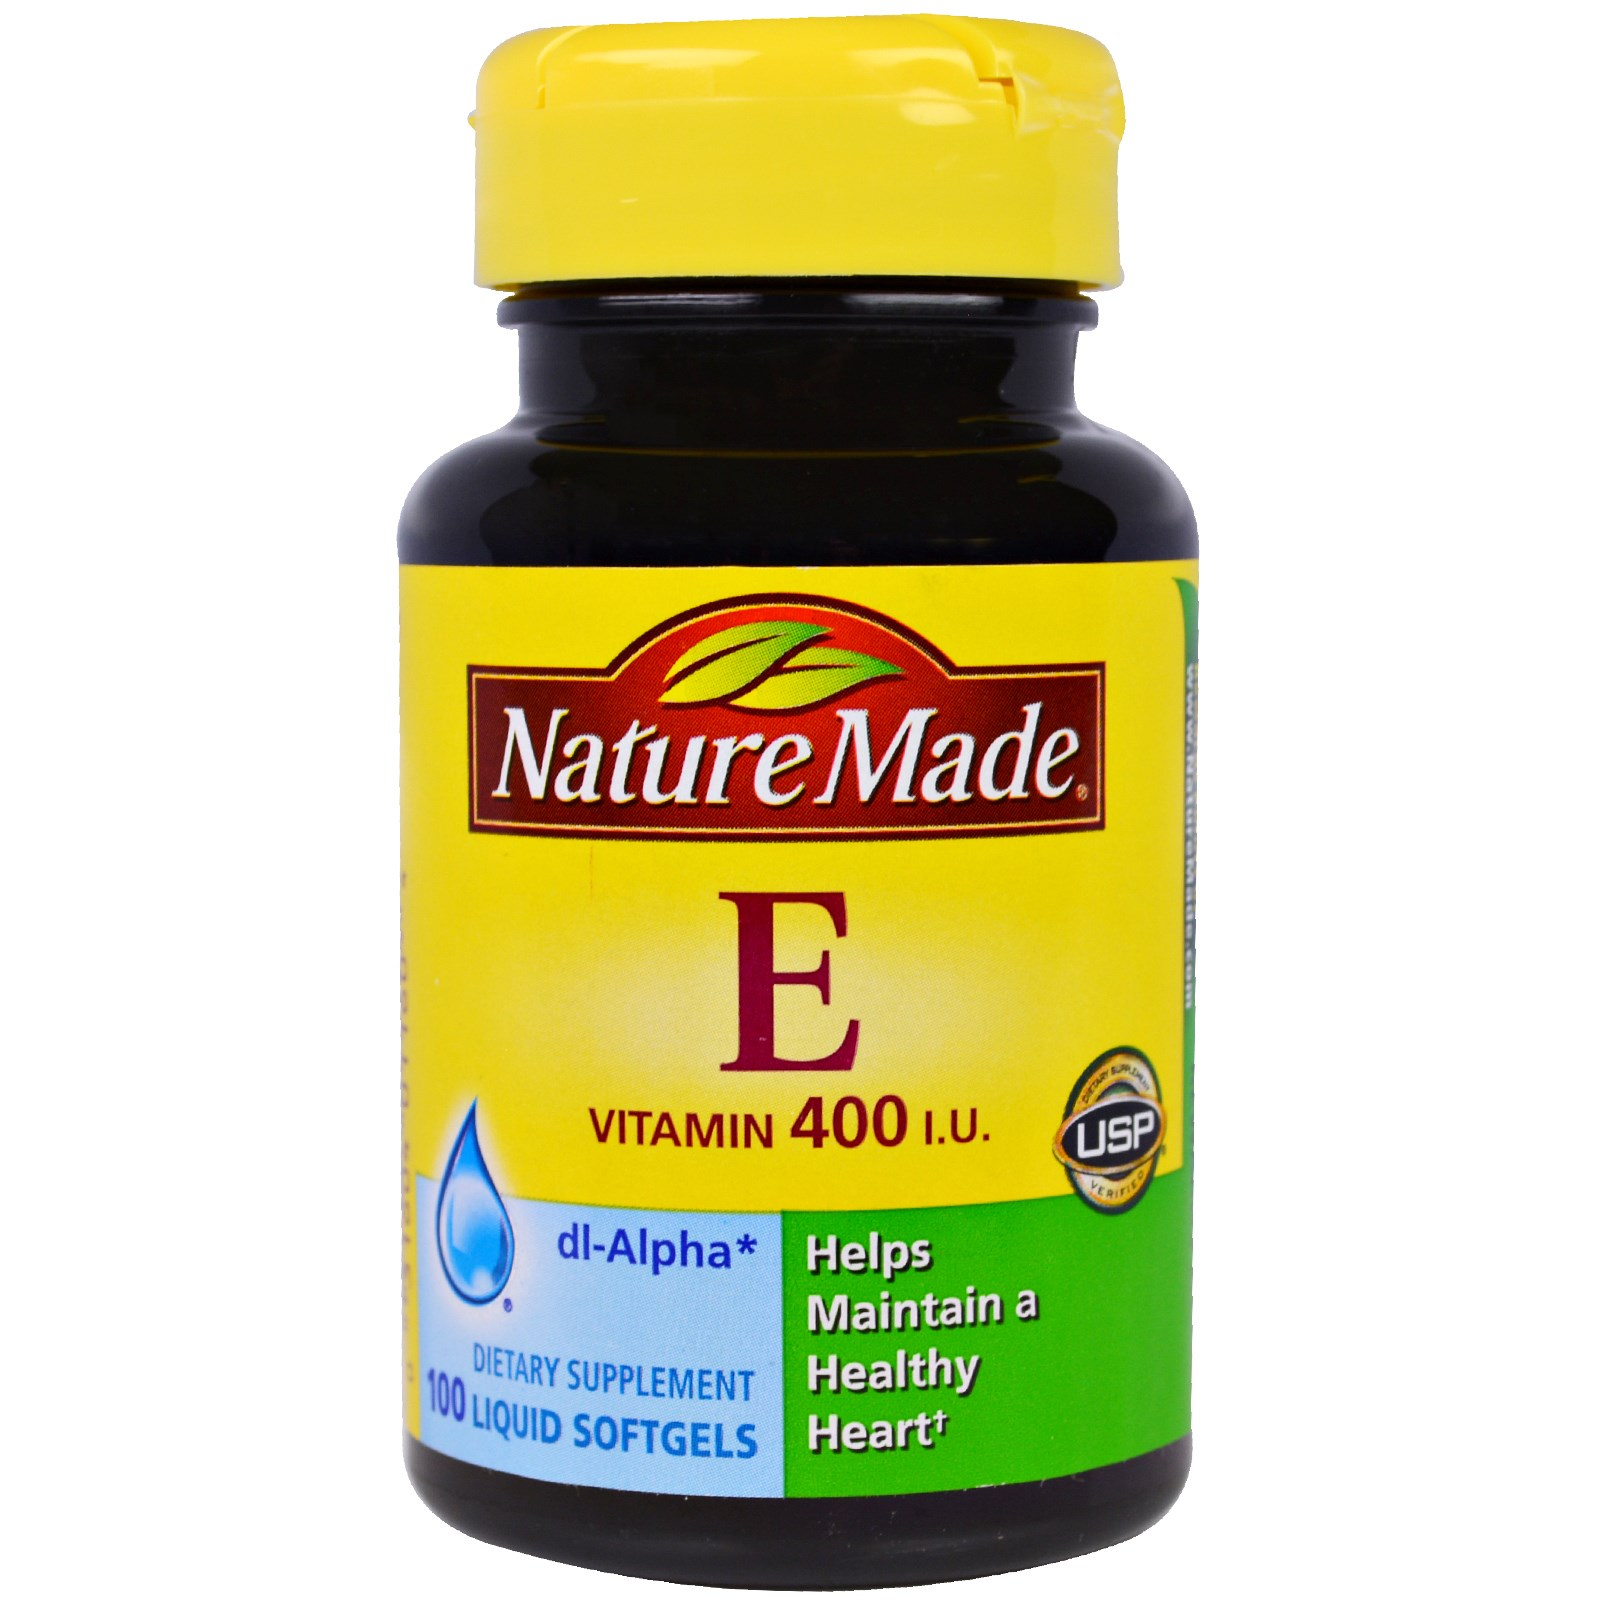 Where Are Nature Made Vitamin Made Such As D